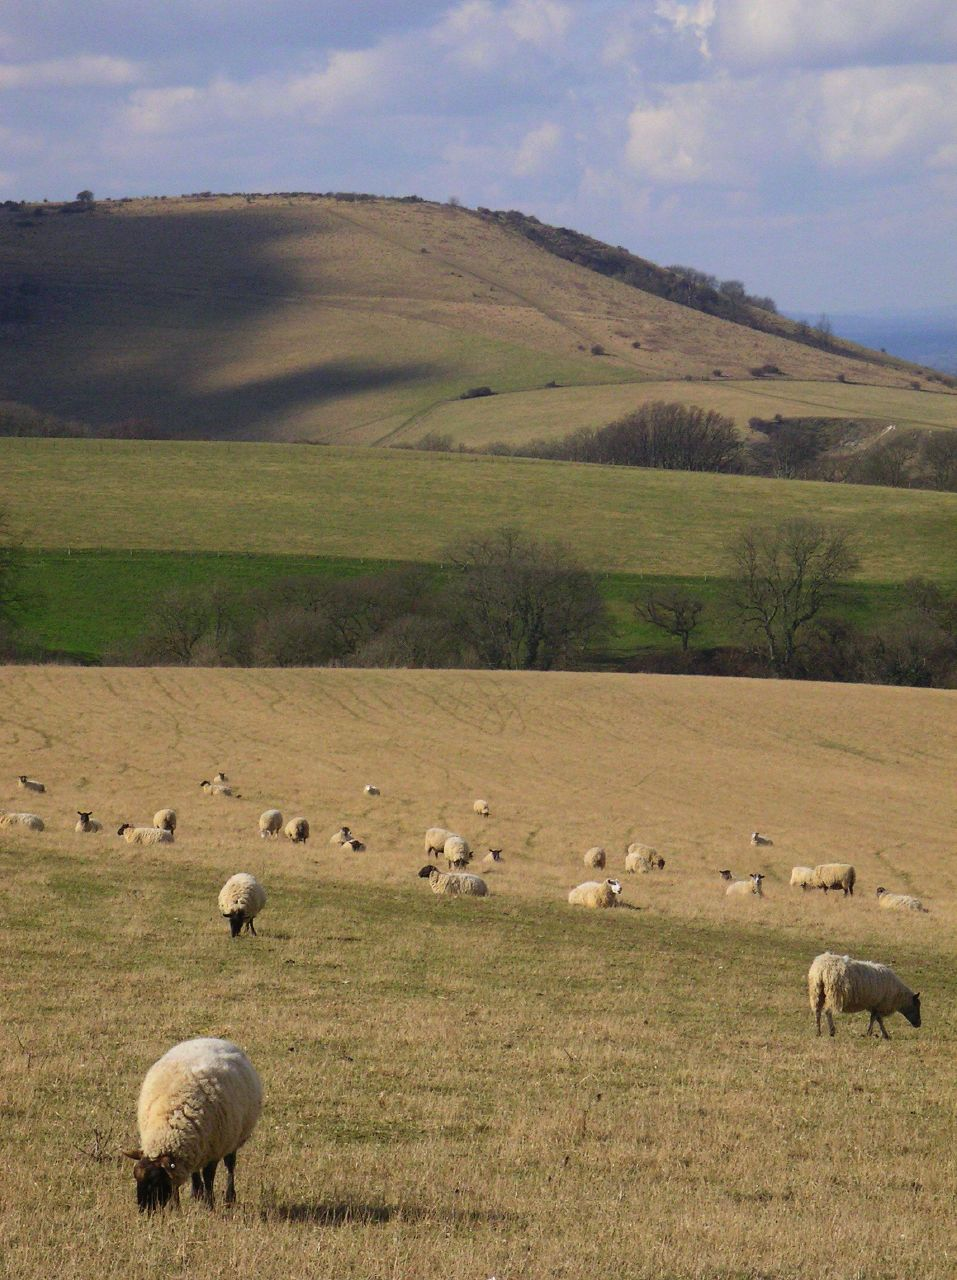 Book 1, Walk 29, Hassocks to Lewes 2 March '06